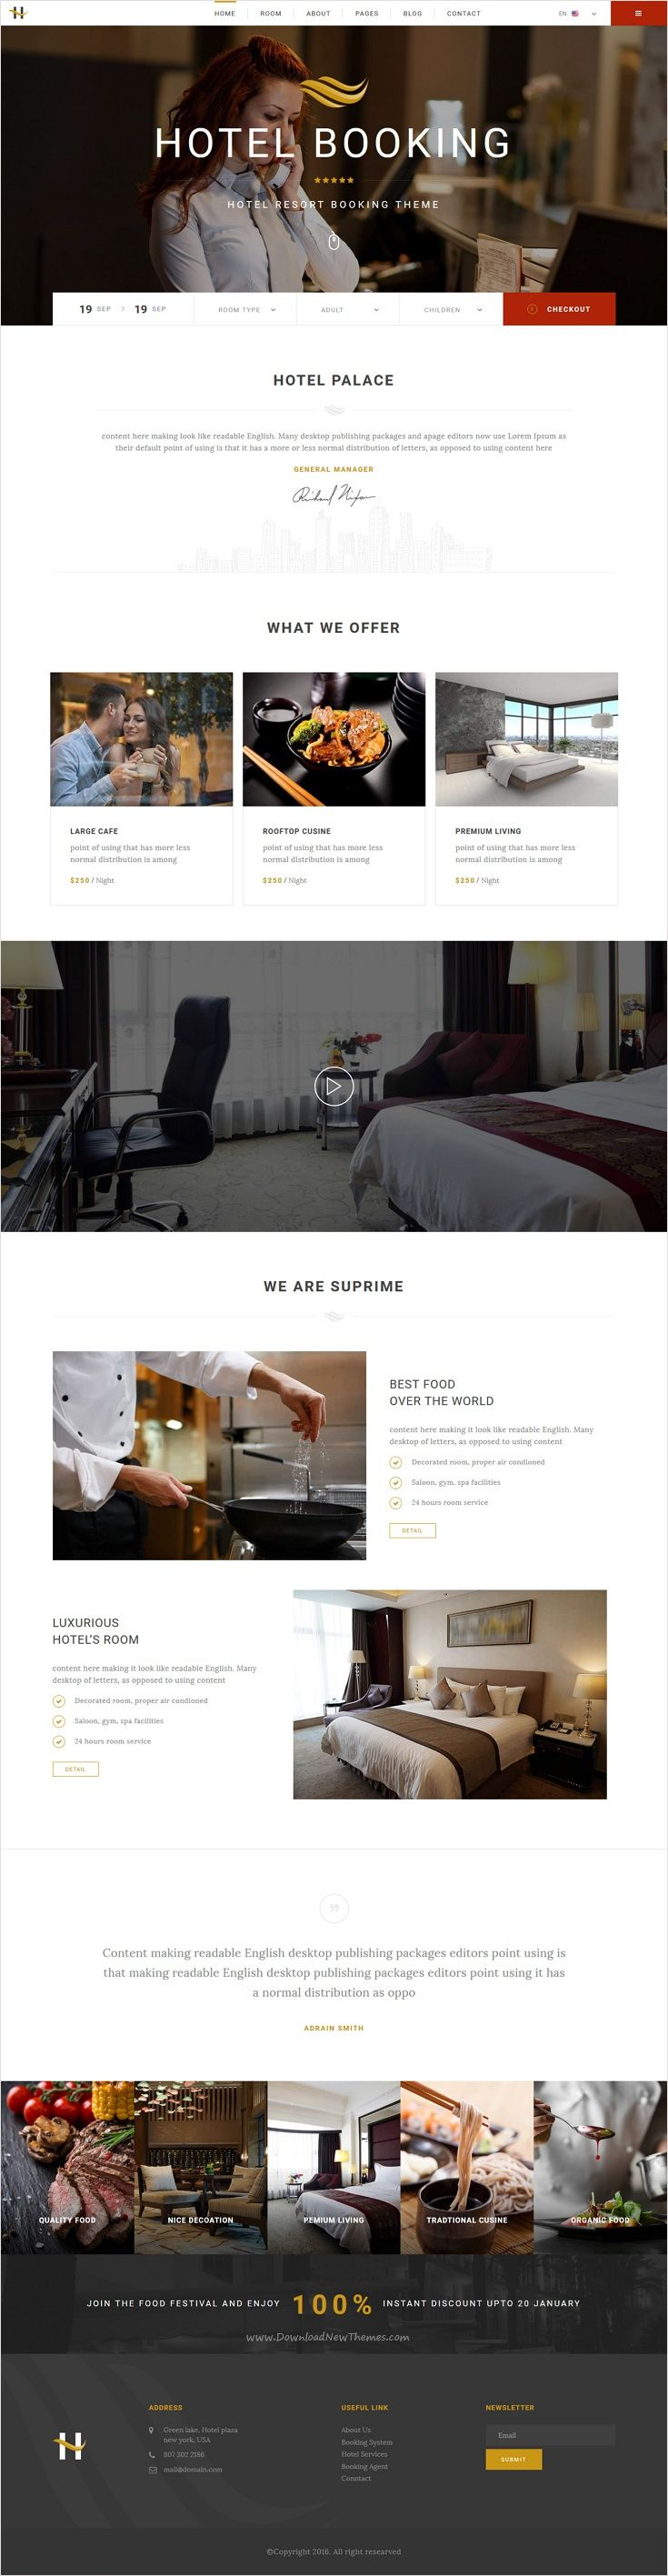 Houston is a beautifully design #Bootstrap template online booking #Hotel #website with 2 unique homepage layouts download now➩ https://themeforest.net/item/houston-online-hotel-booking-template/17391008?ref=Datasata